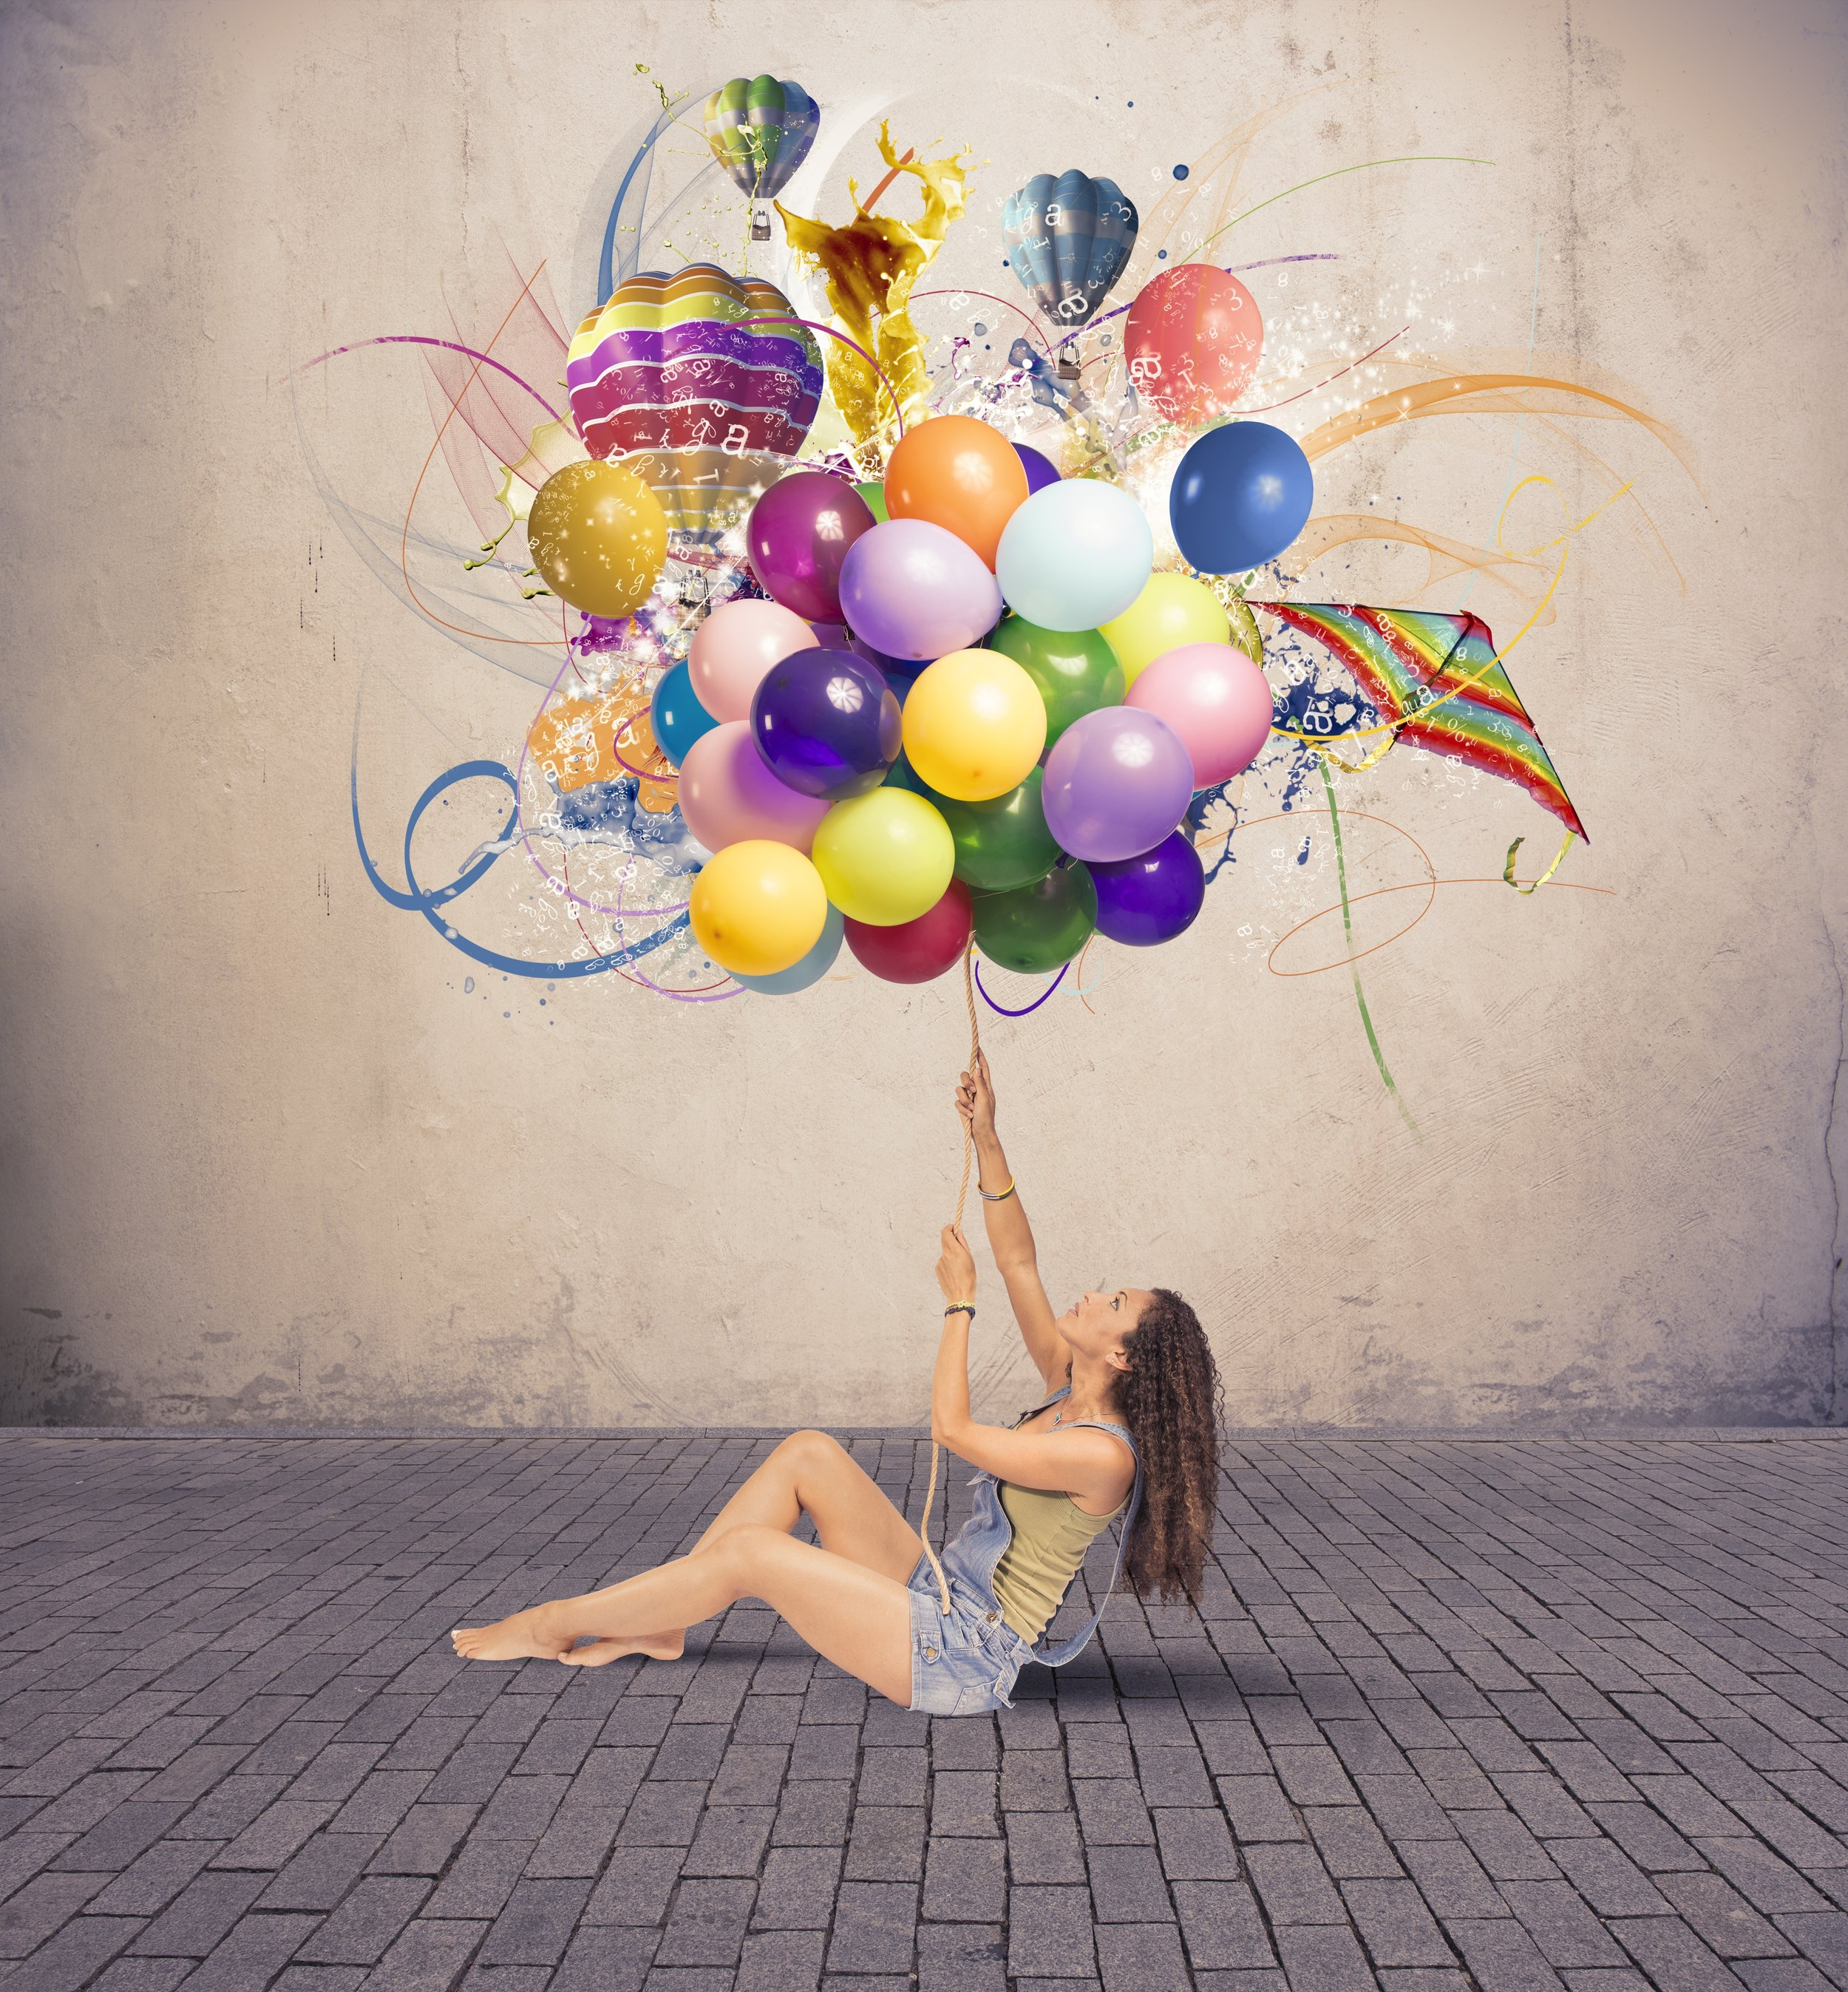 bigstock-Girl-With-Balloon-47752099.jpg